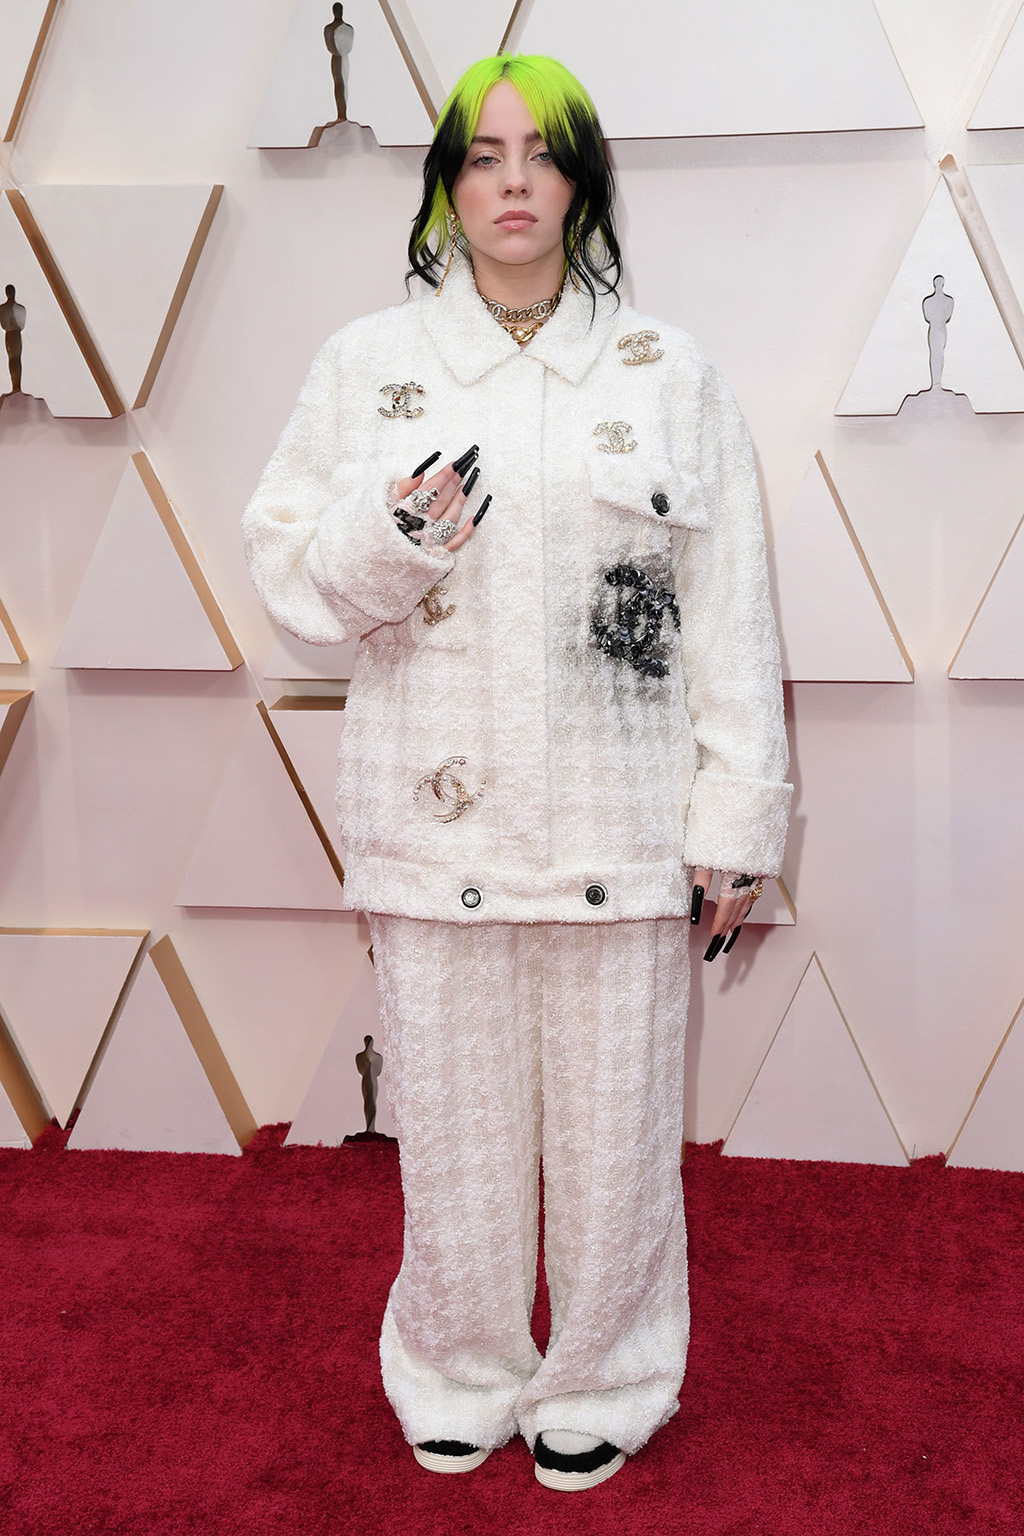 92nd Annual Academy Awards, Arrivals, Fashion Highlights, Los Angeles, USA – 09 Feb 2020